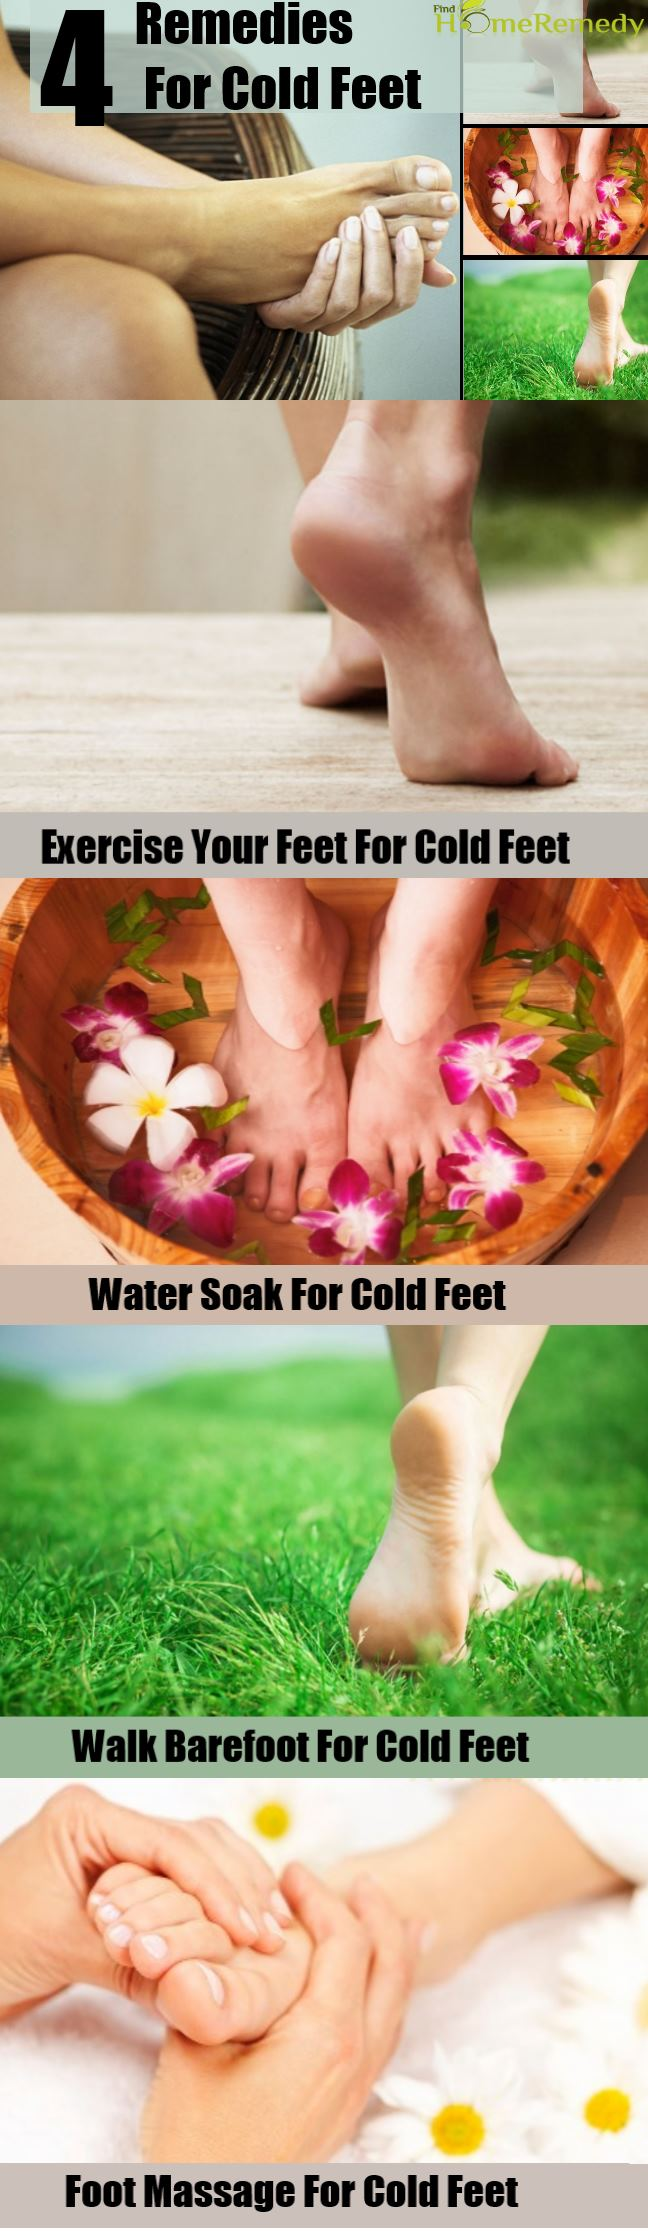 Top 4 Home Remedies For Cold Feet